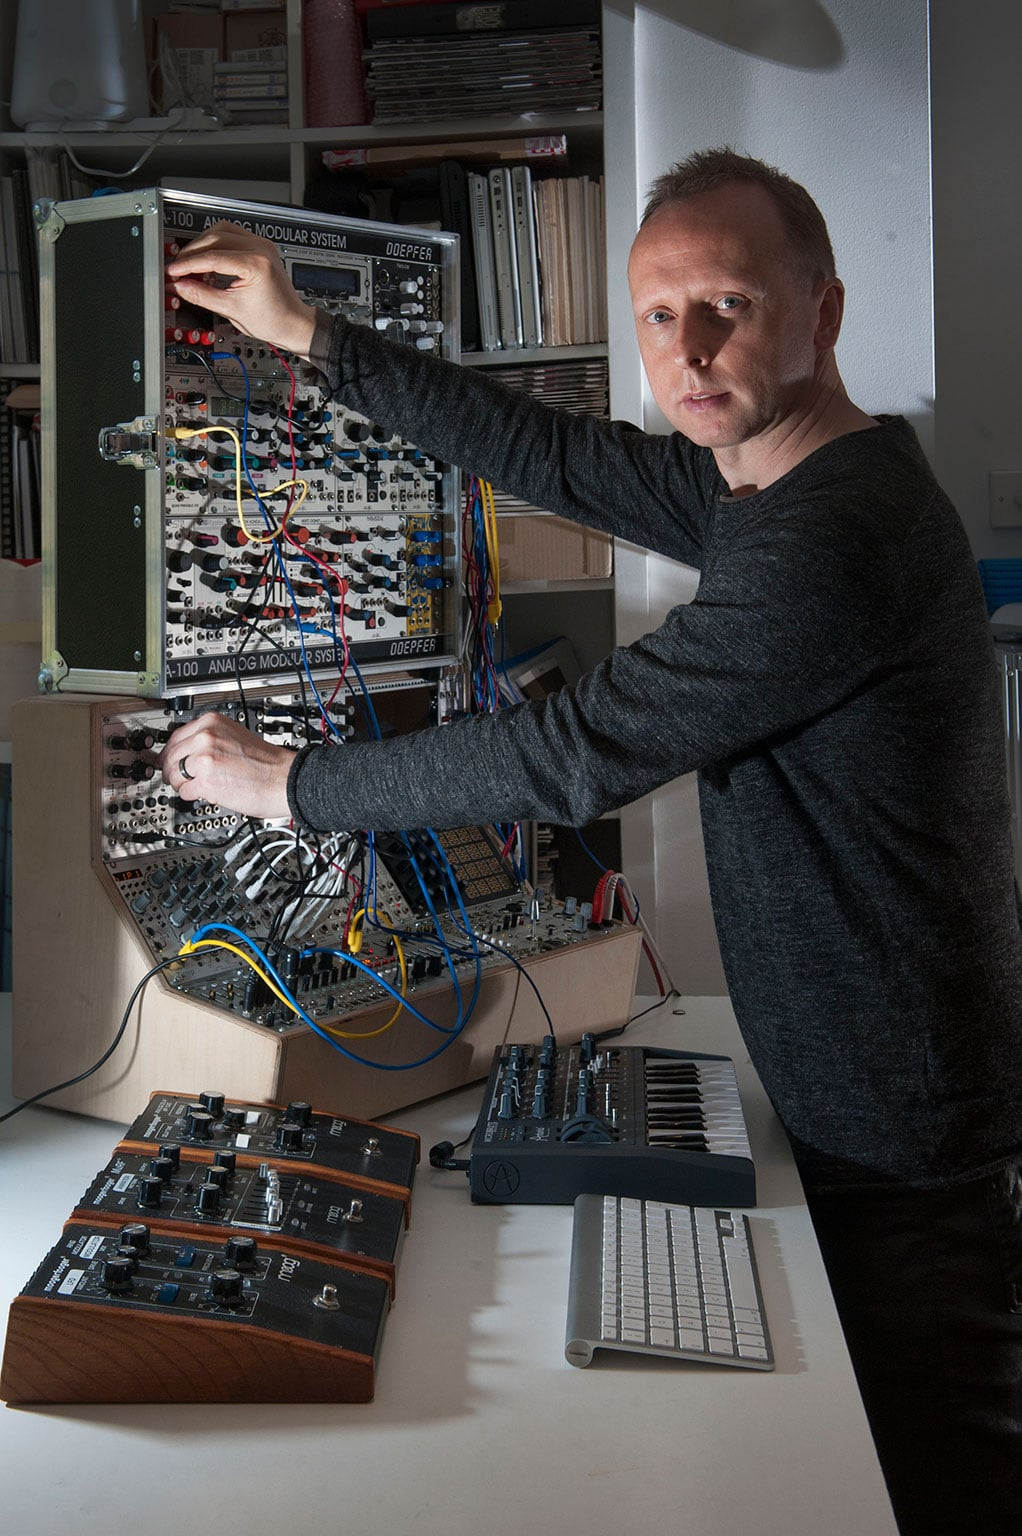 Museum Lates London Museum lates in september art fund sonic artist scanner will perform at museum of london docklands late london sonic city sisterspd